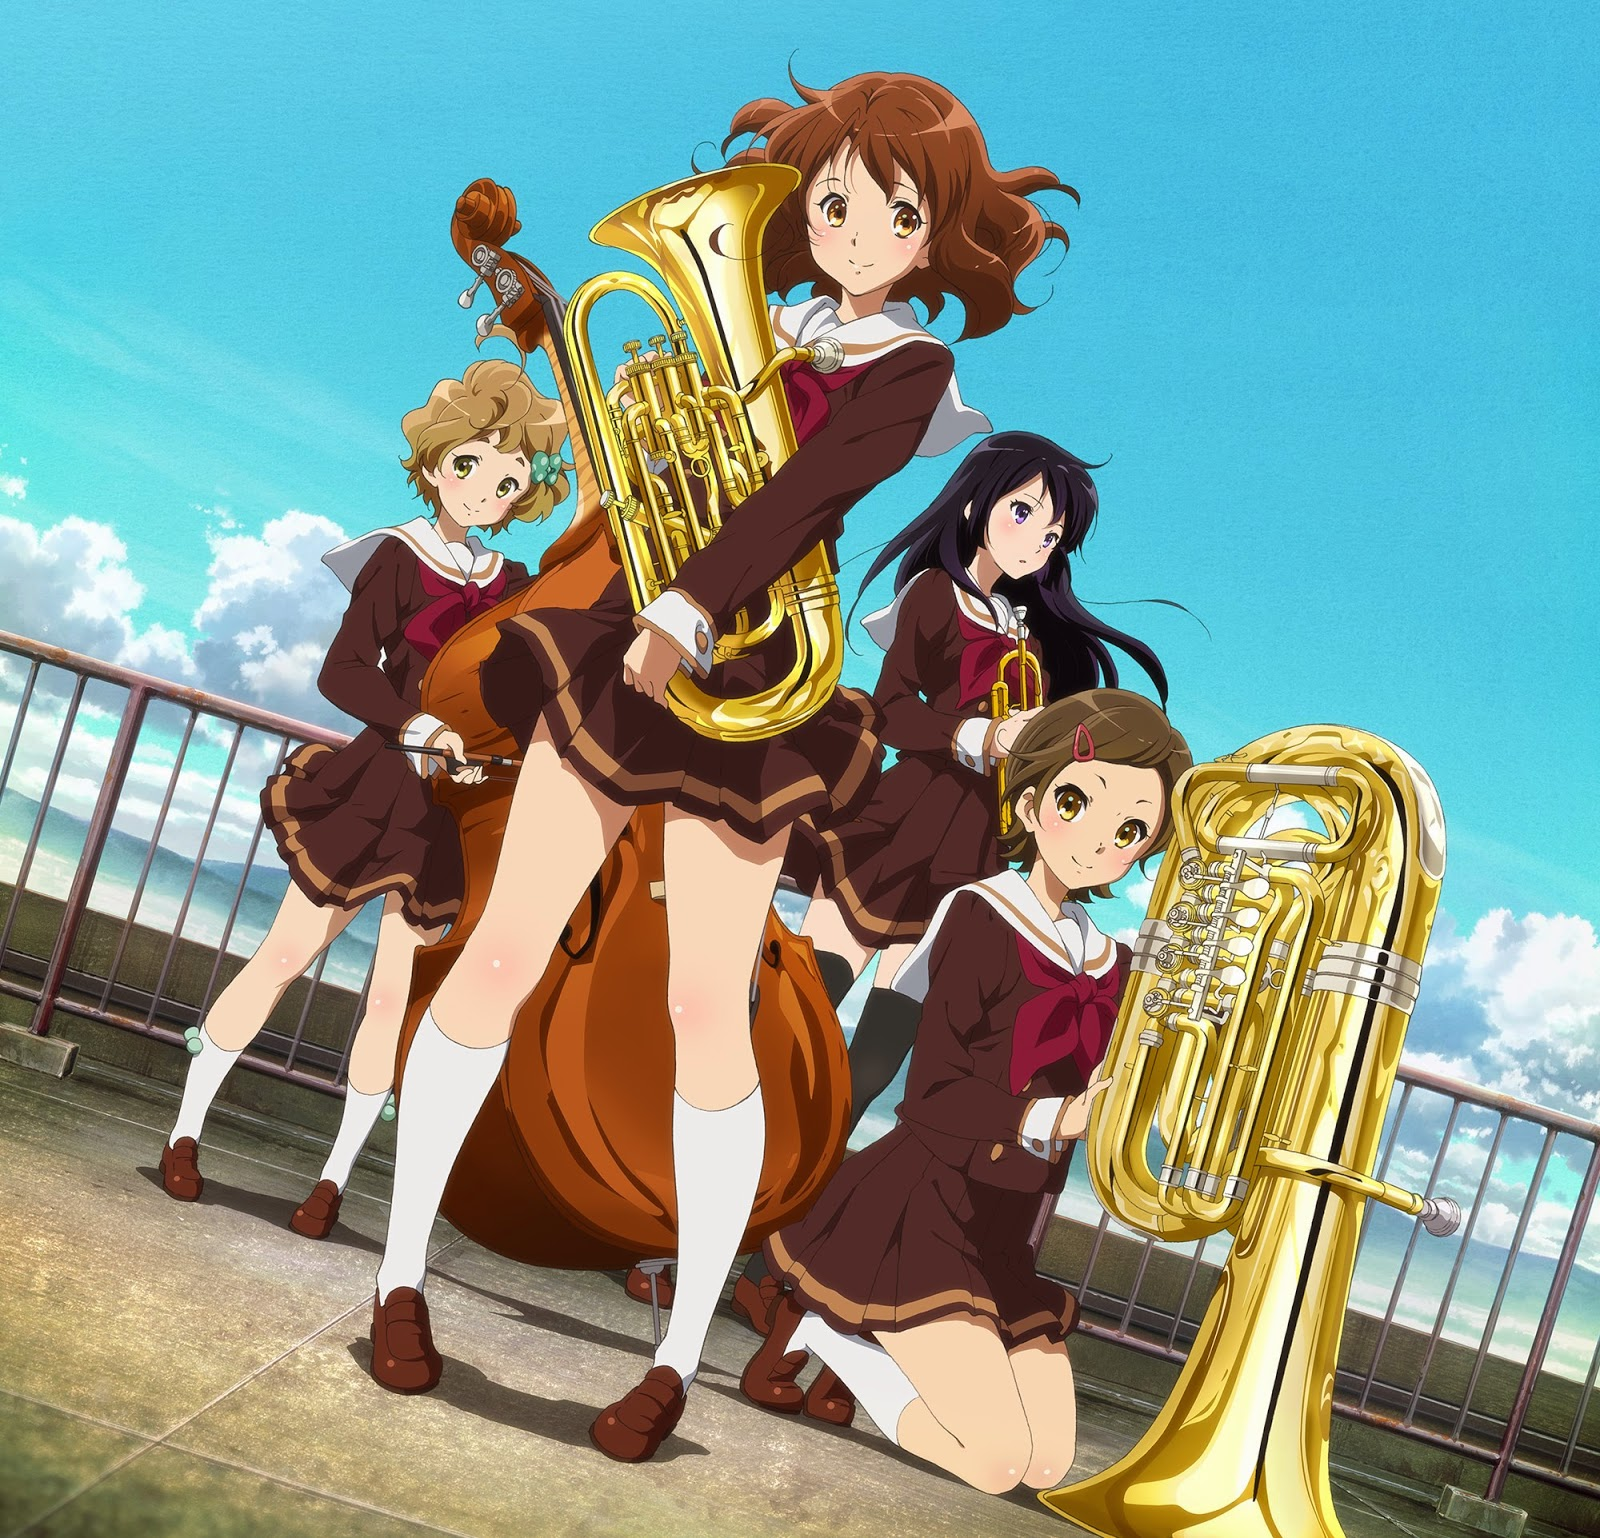 Hibike Euphonium Radio Anime Podcast Persona No Sekai Blog